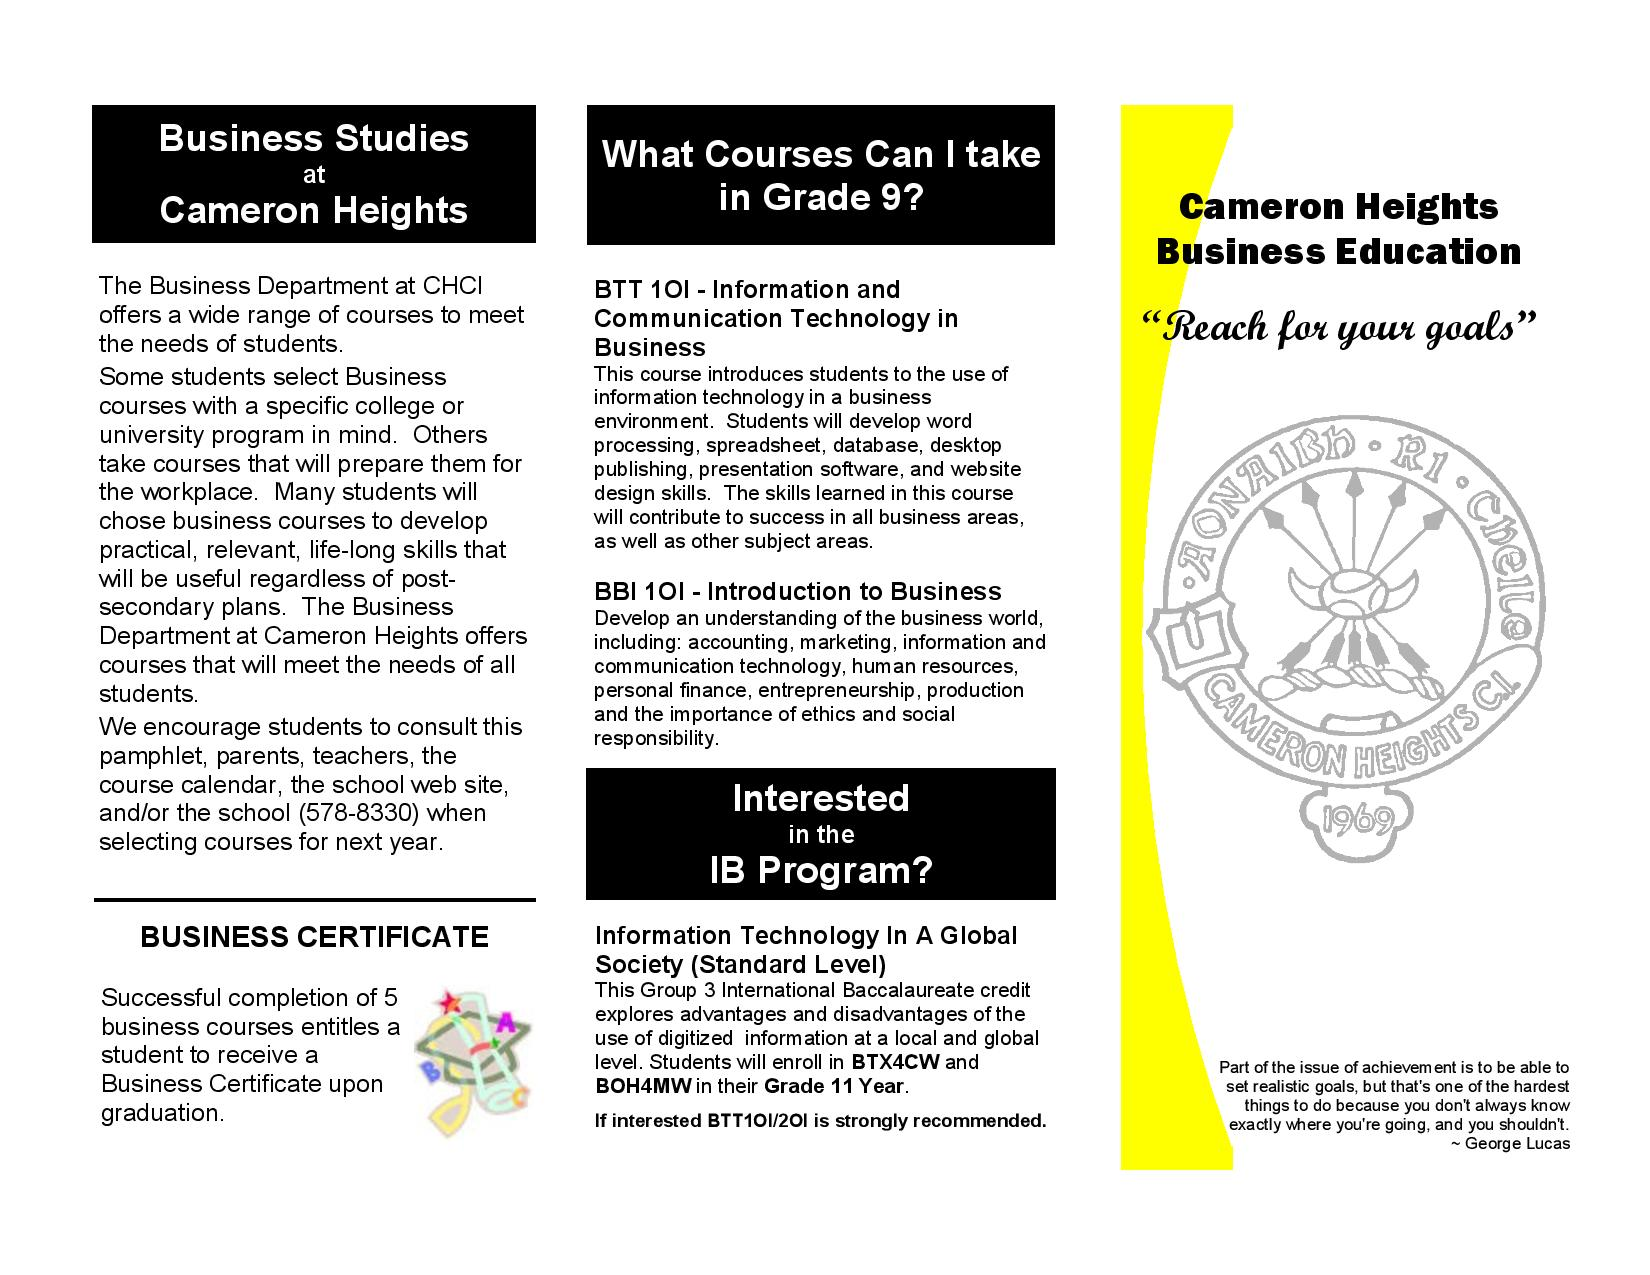 Grade 9 Business Courses Pamphlet (Cameron Heights